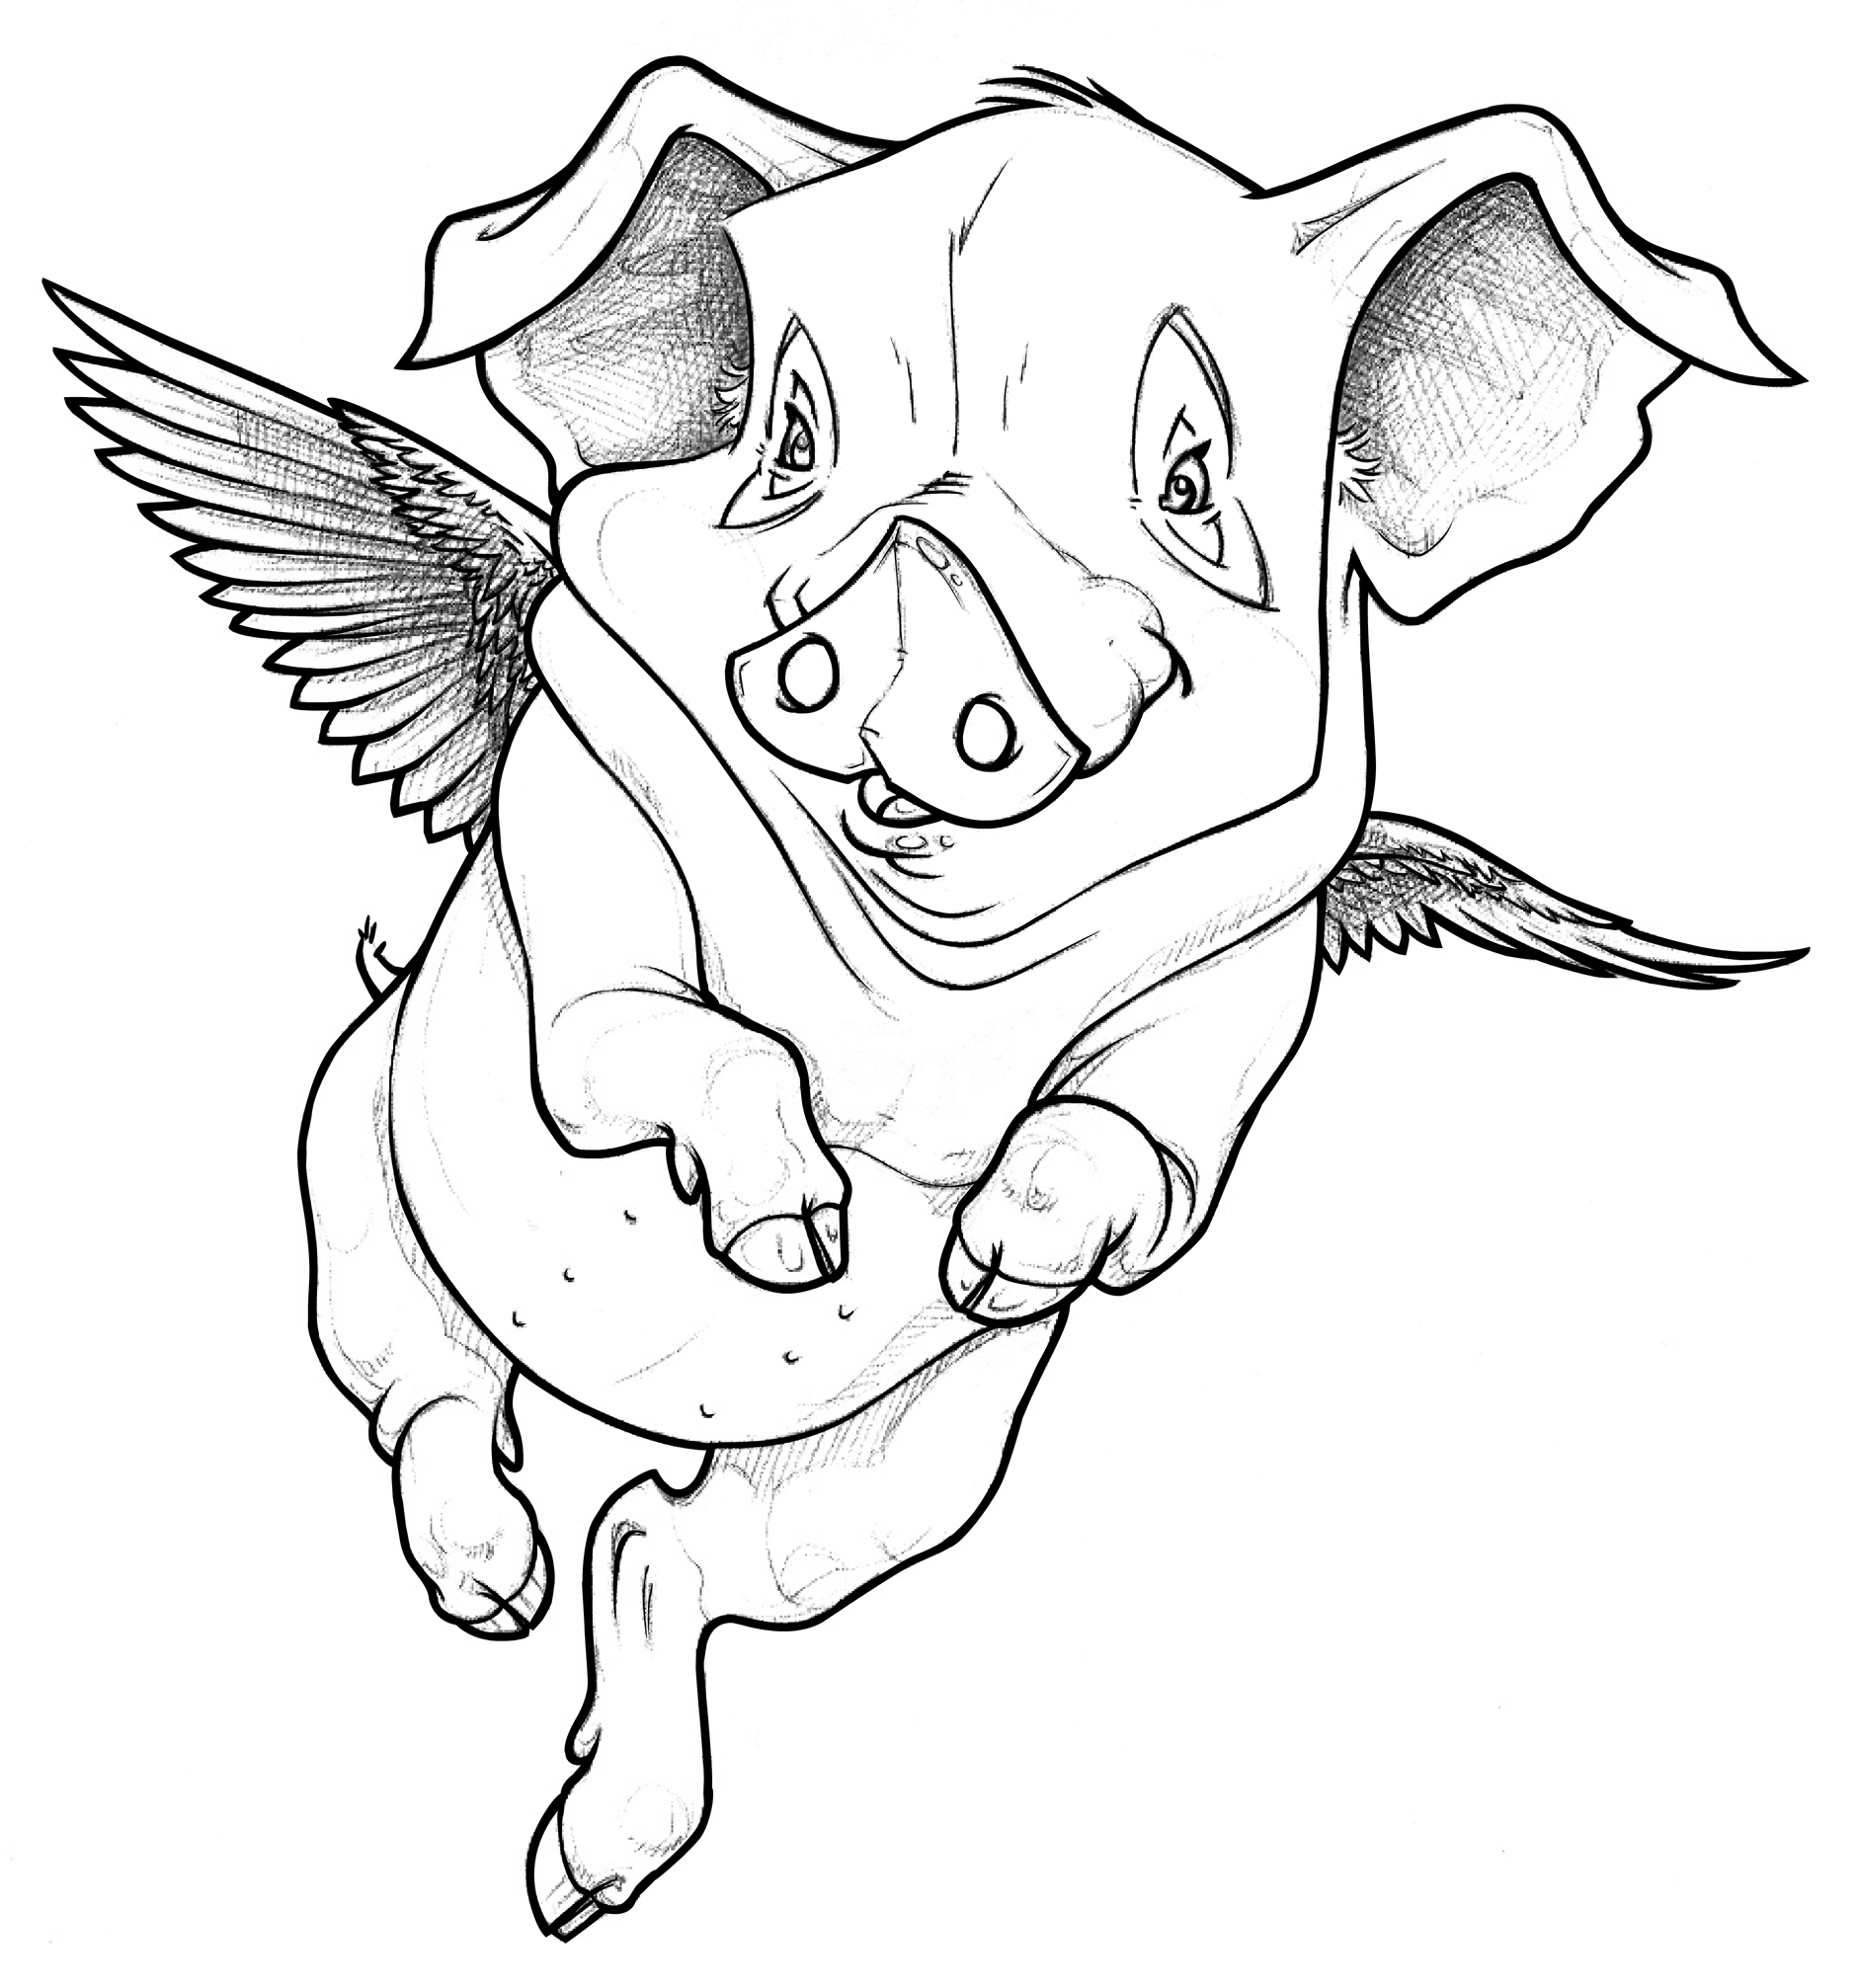 Piglet Line Drawing : Flying pig drawing pixshark images galleries